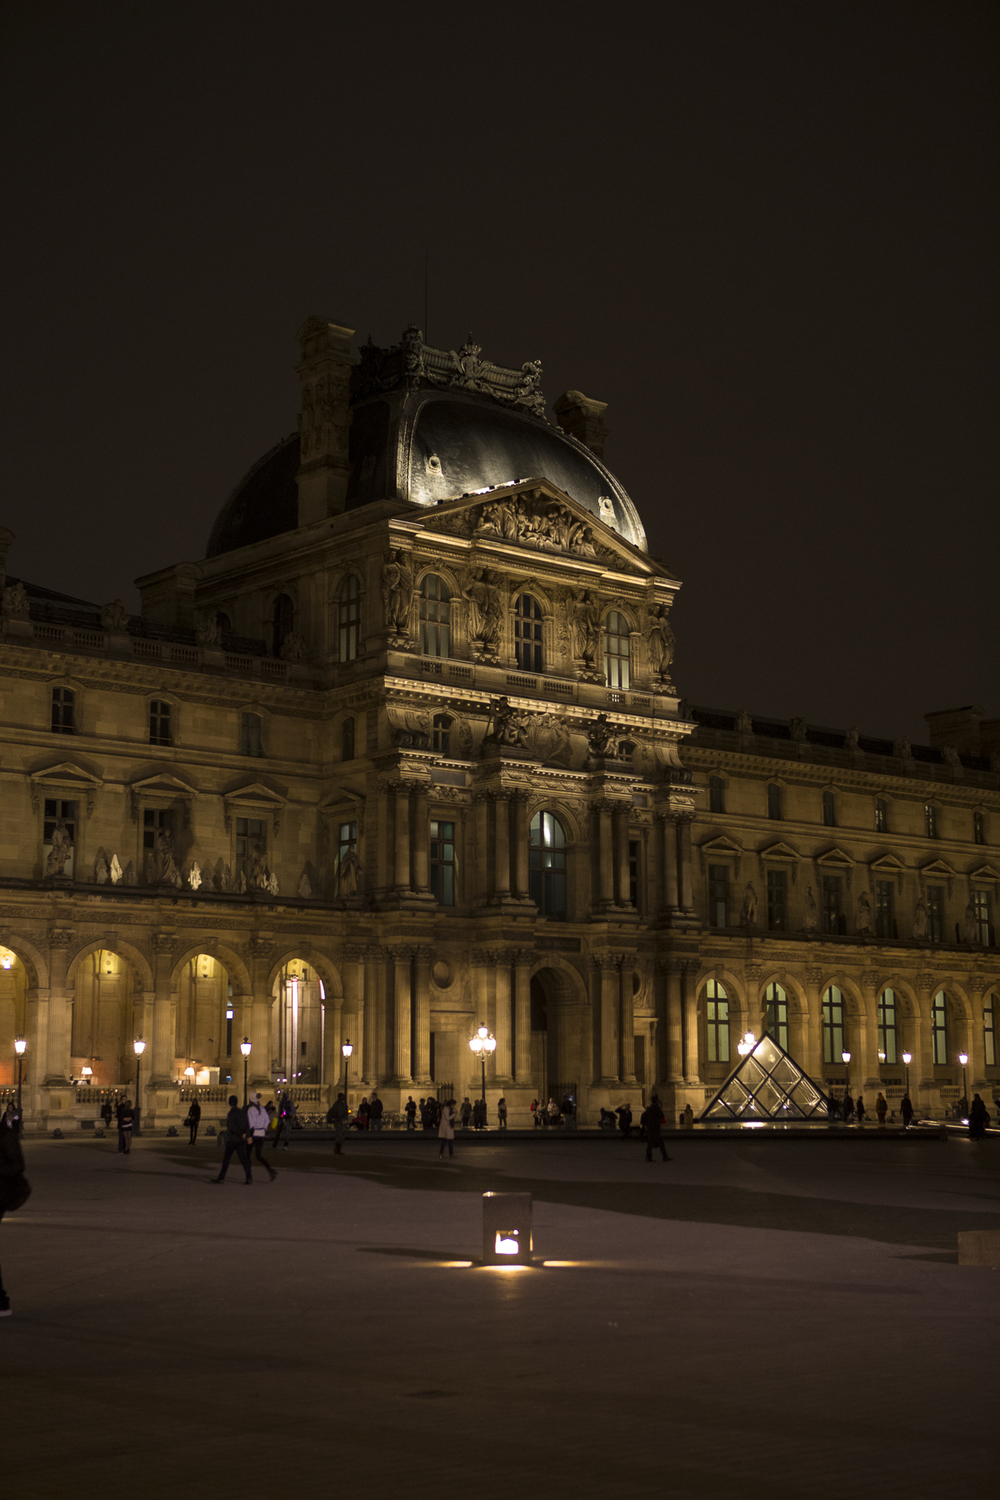 Louvre at night-1.jpg